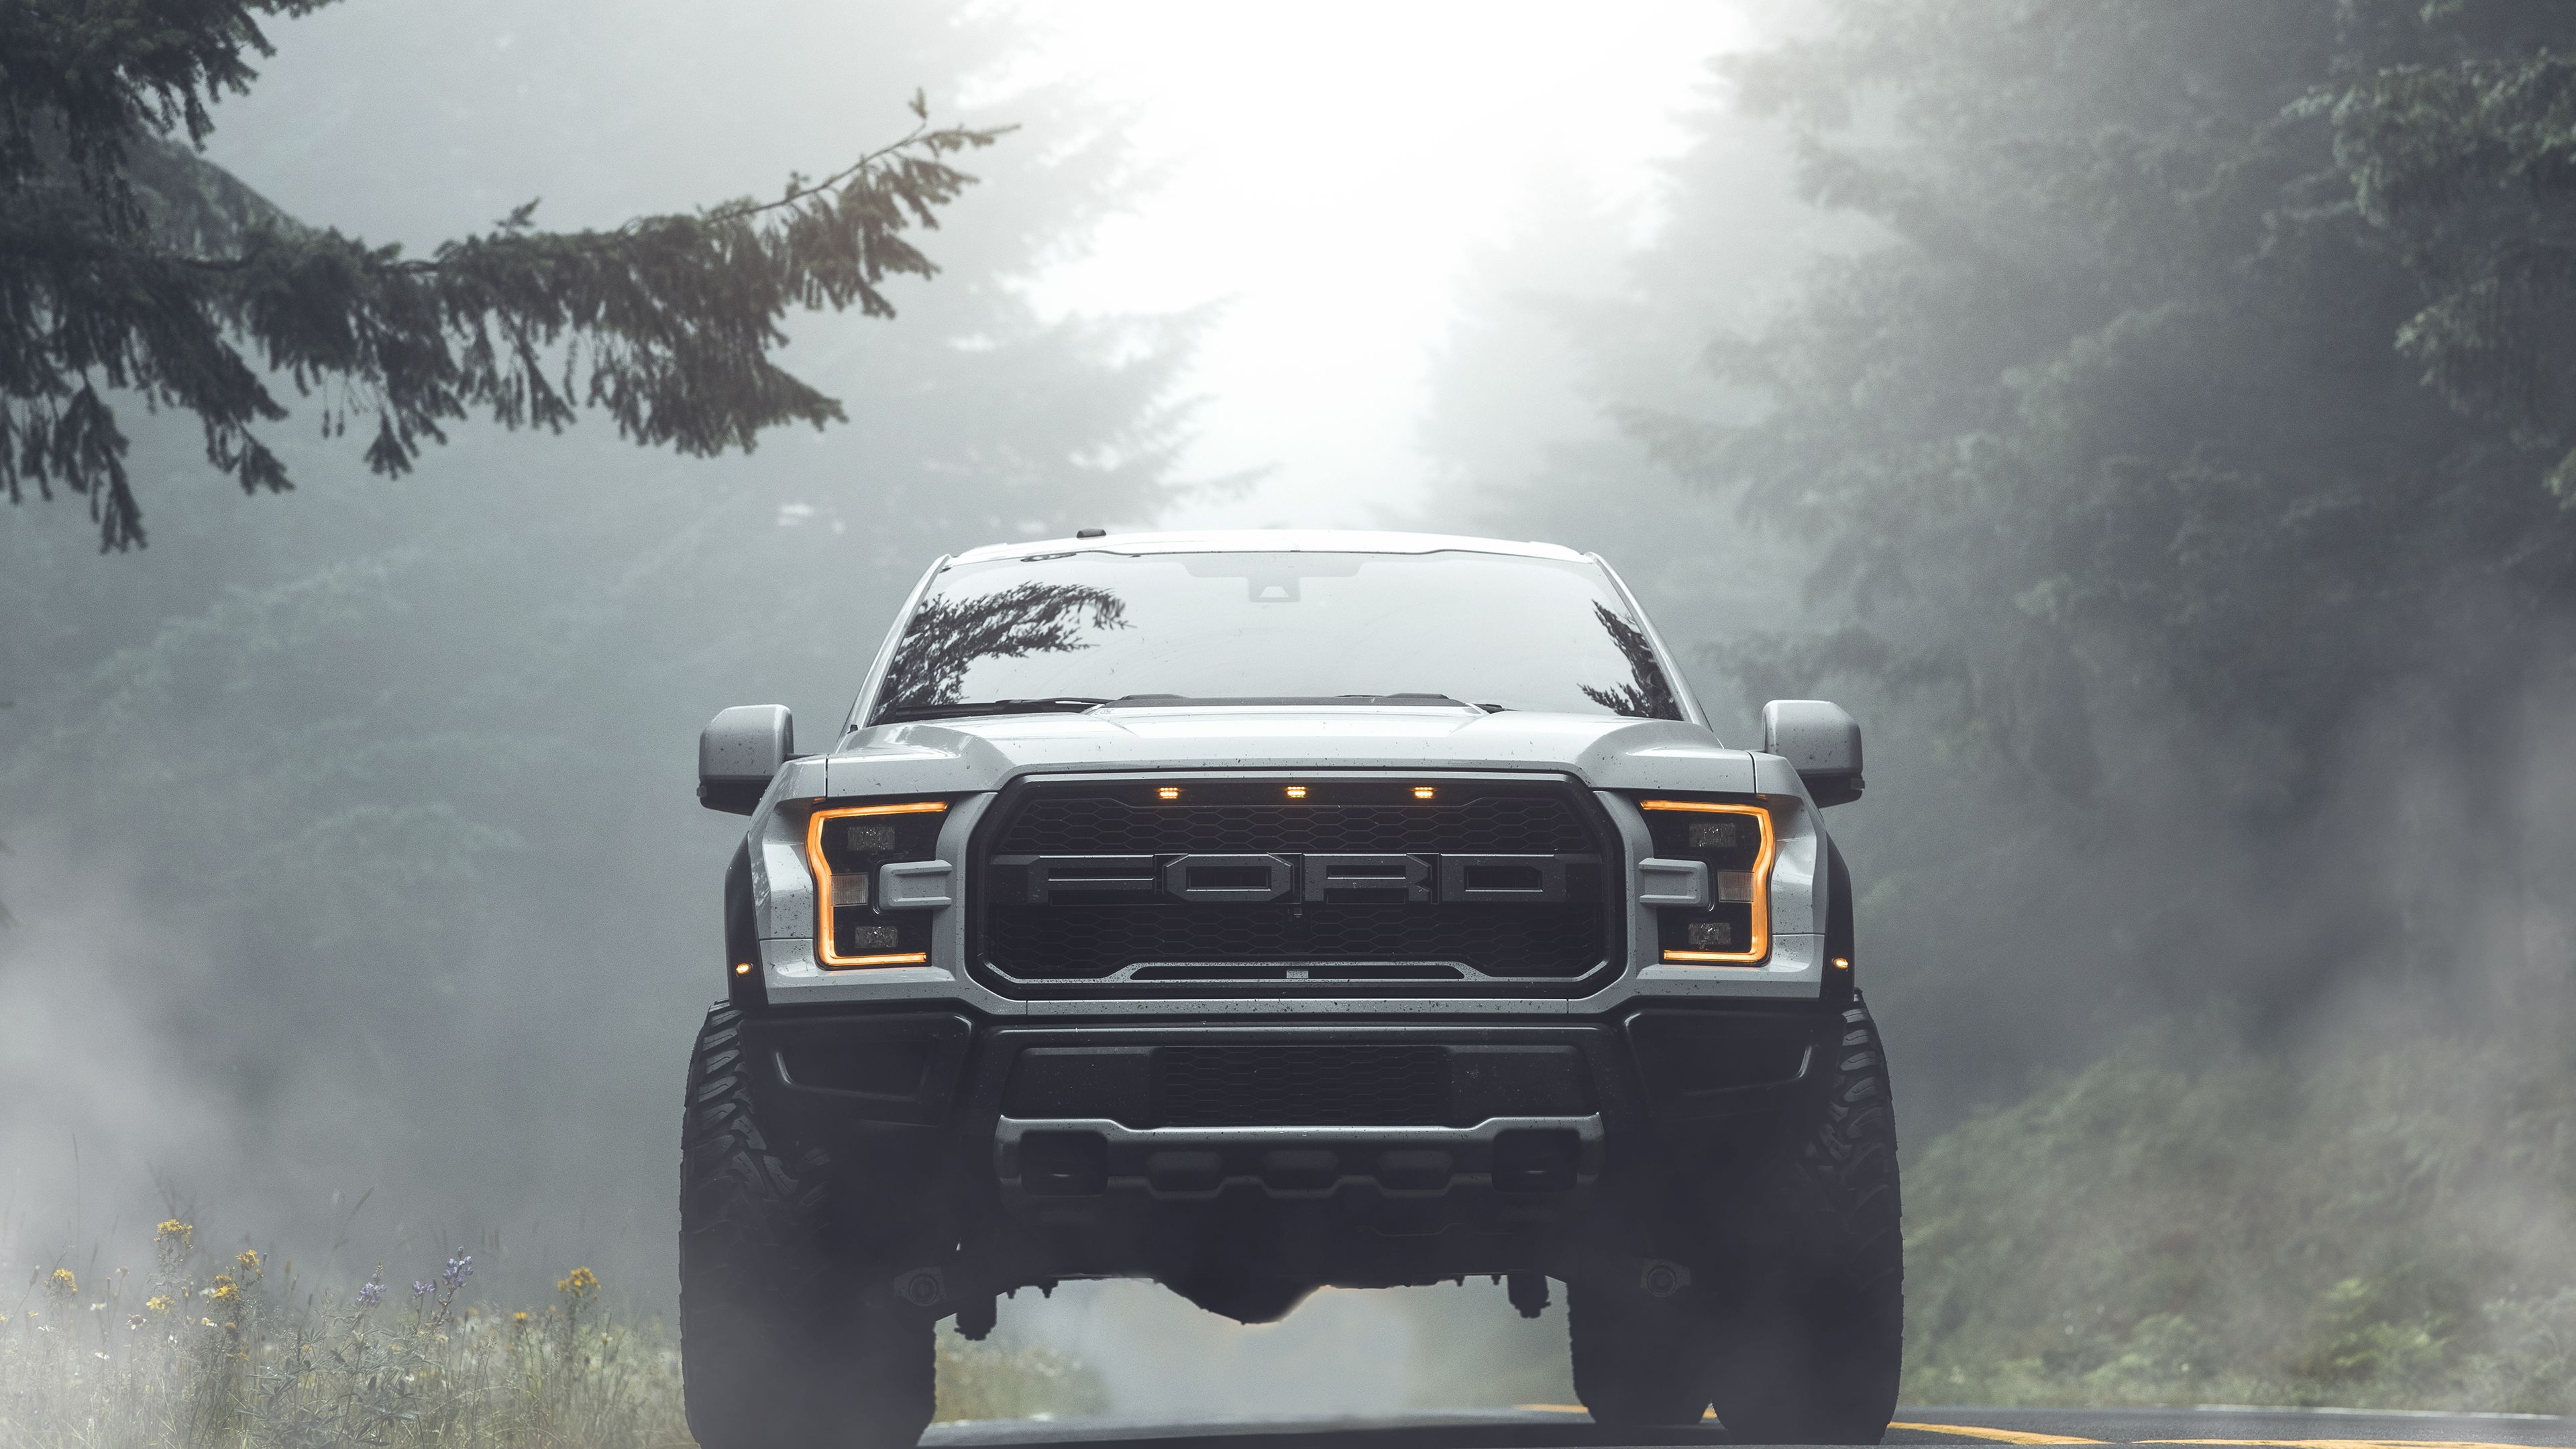 Ford Raptor Truck Wallpapers Hd Wallpapers Ford Wallpapers Ford